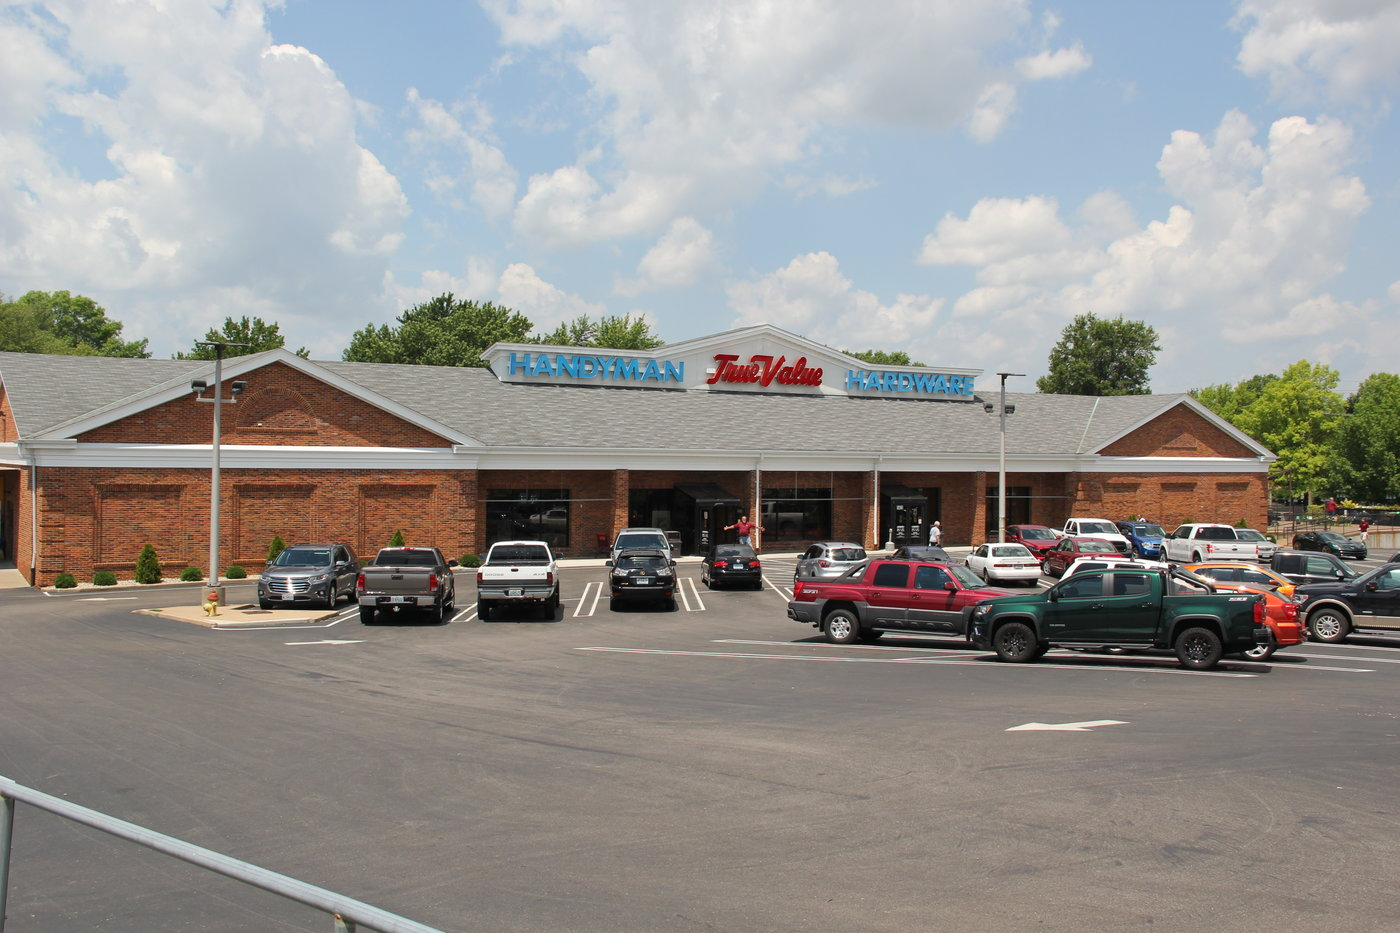 Handyman True Value's three stores average 32,000 square feet of retail space.